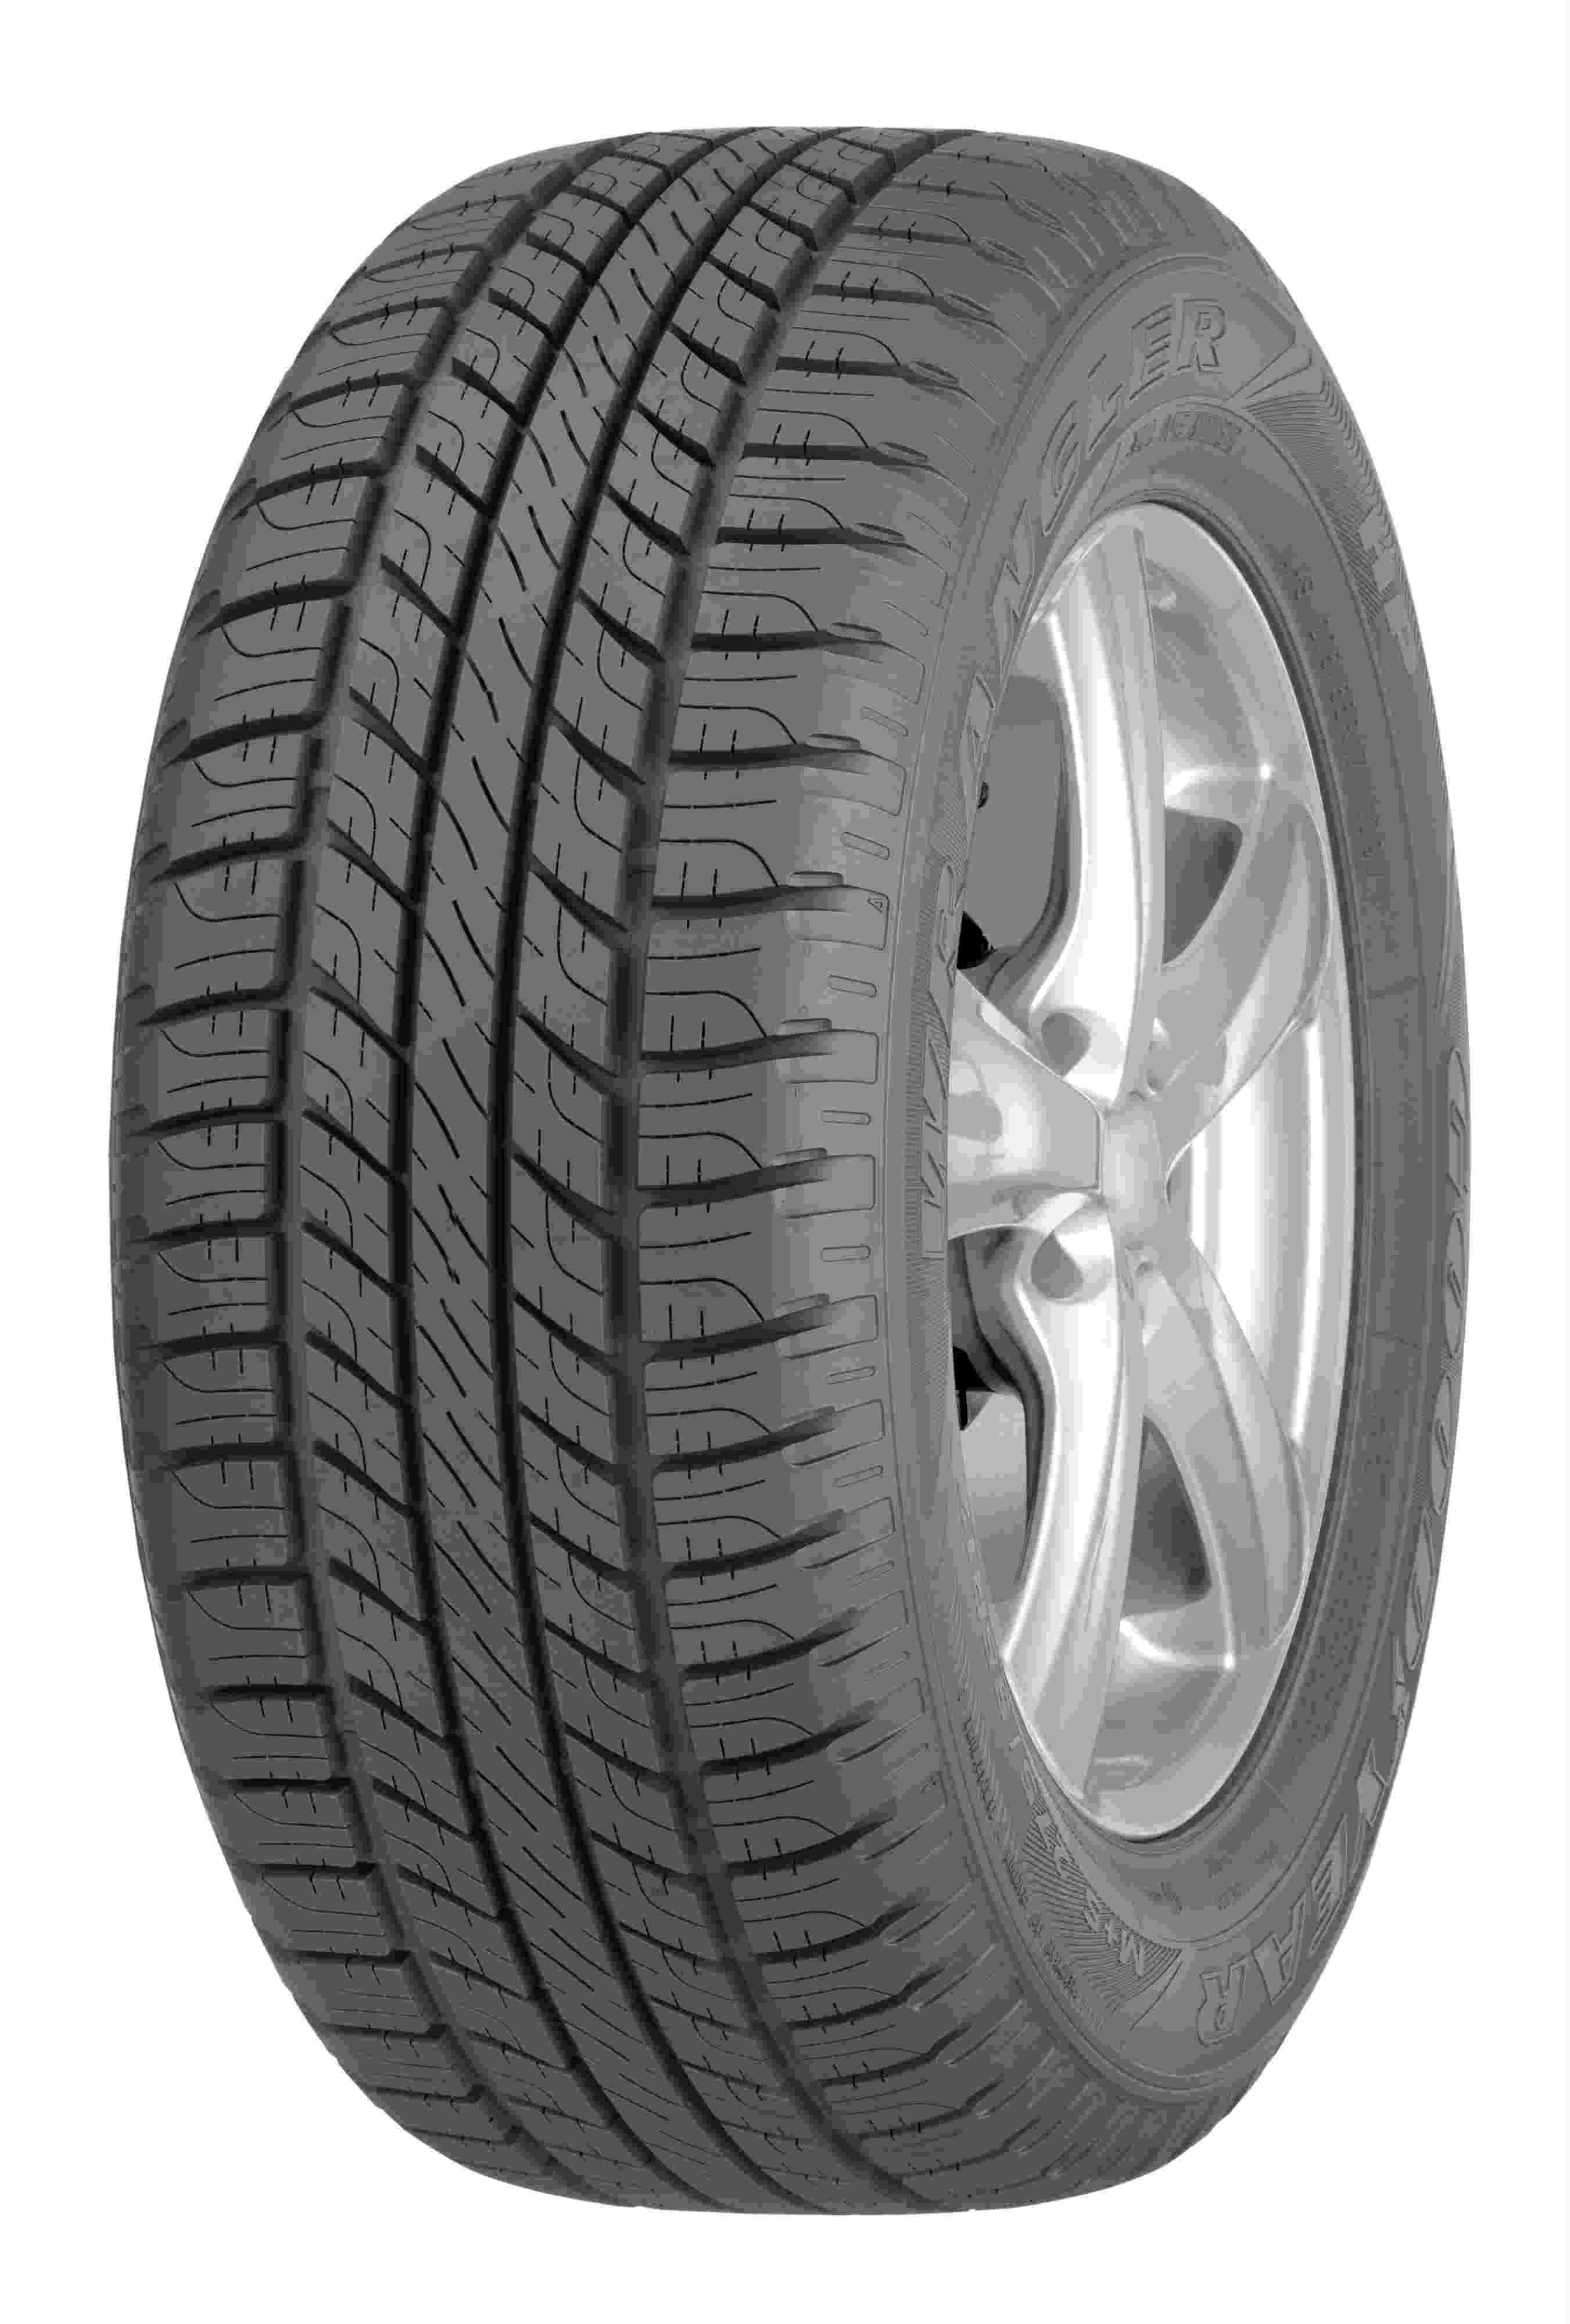 GOODYEAR WRL HP ALL WEATHER 235/70R17